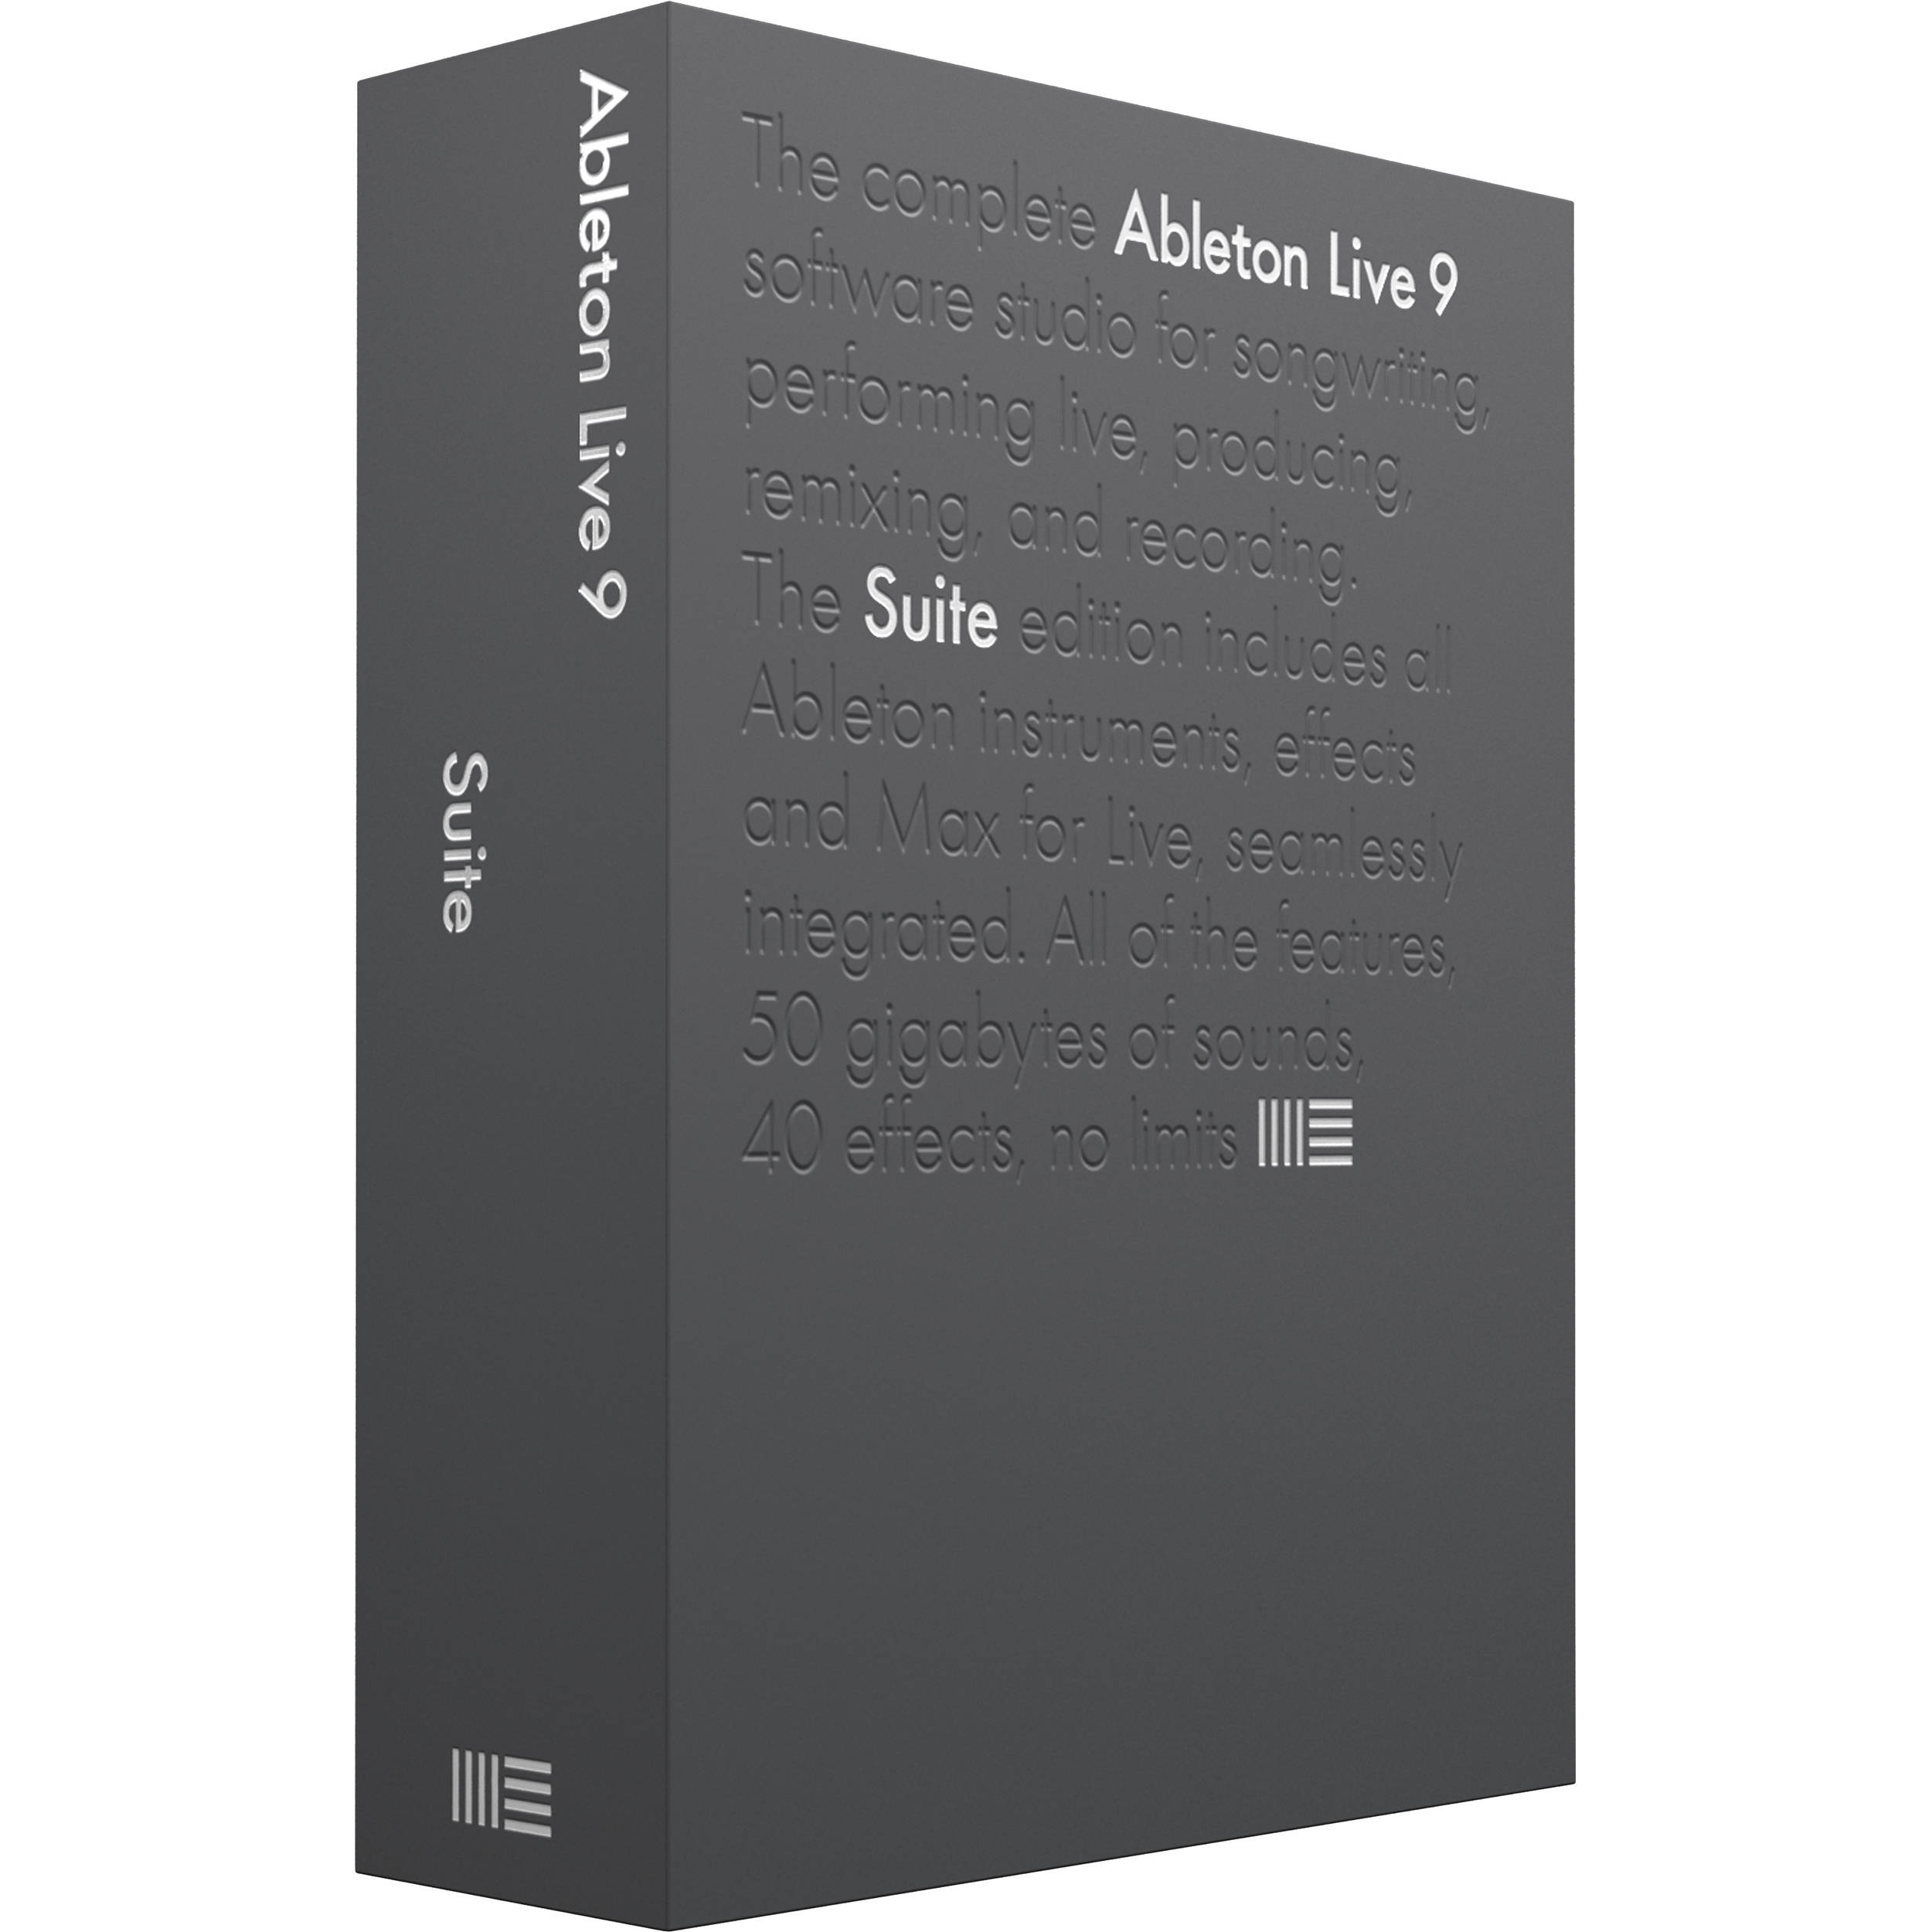 ableton live 9 suite upgrade music production software 86972. Black Bedroom Furniture Sets. Home Design Ideas